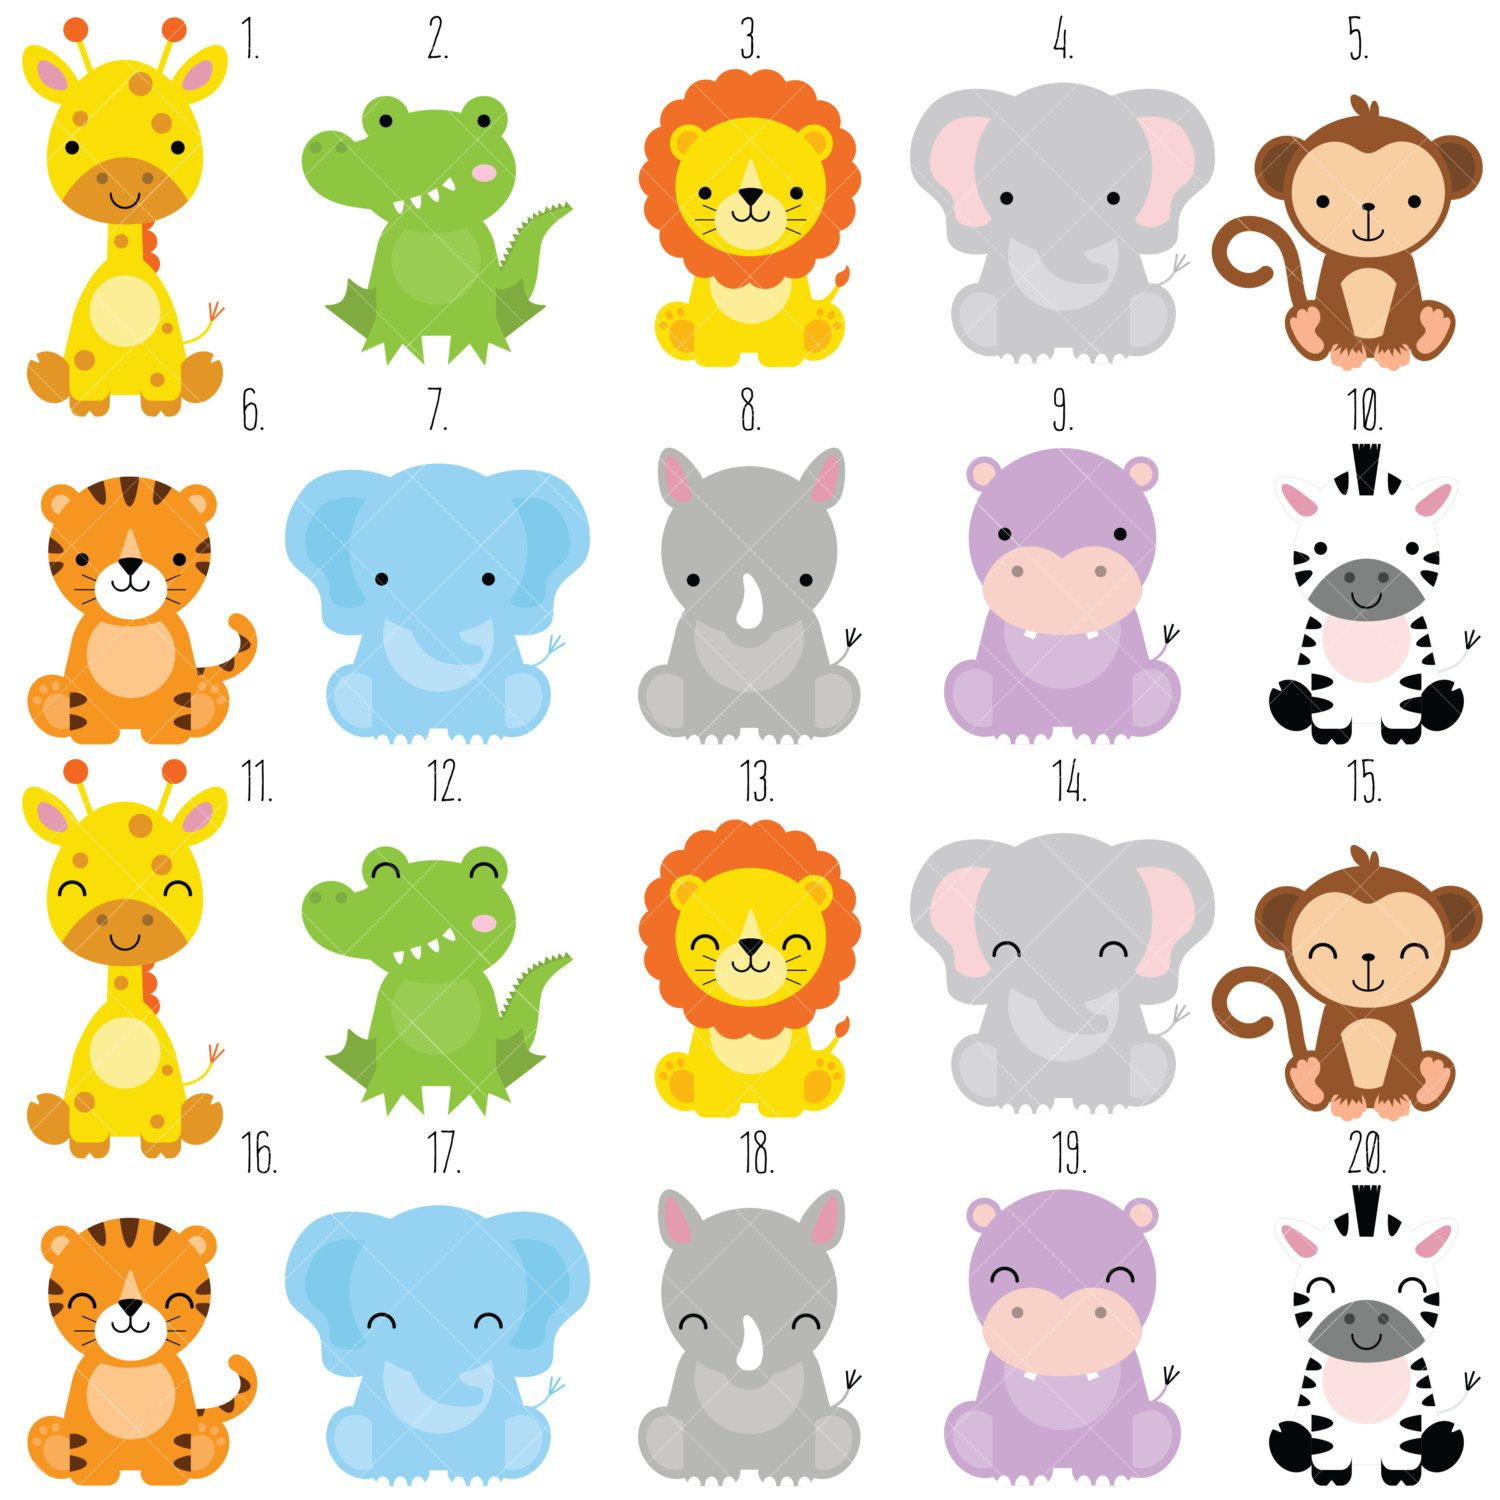 Safari baby animals clipart jungle animals clipart zoo animals clipart basteln - Schulprojekte ideen ...